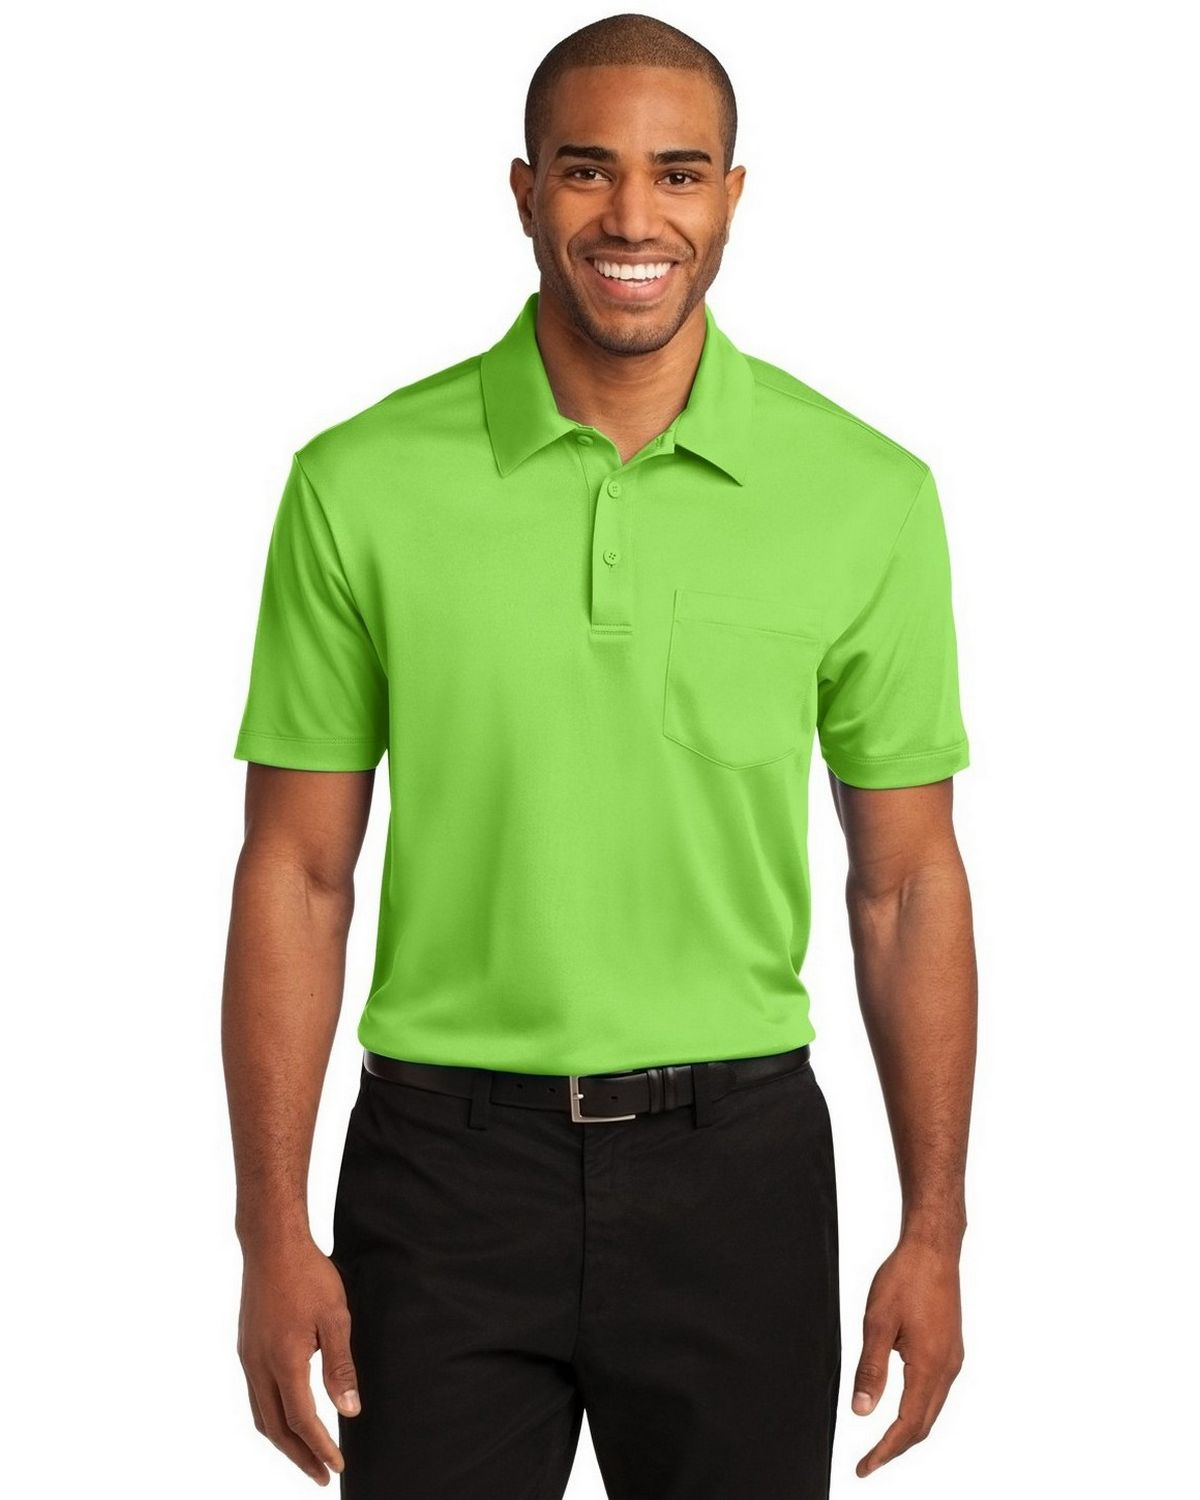 Port Authority K540P Men's Silk Touch Performance Pocket Polo - Lime - XS #silk